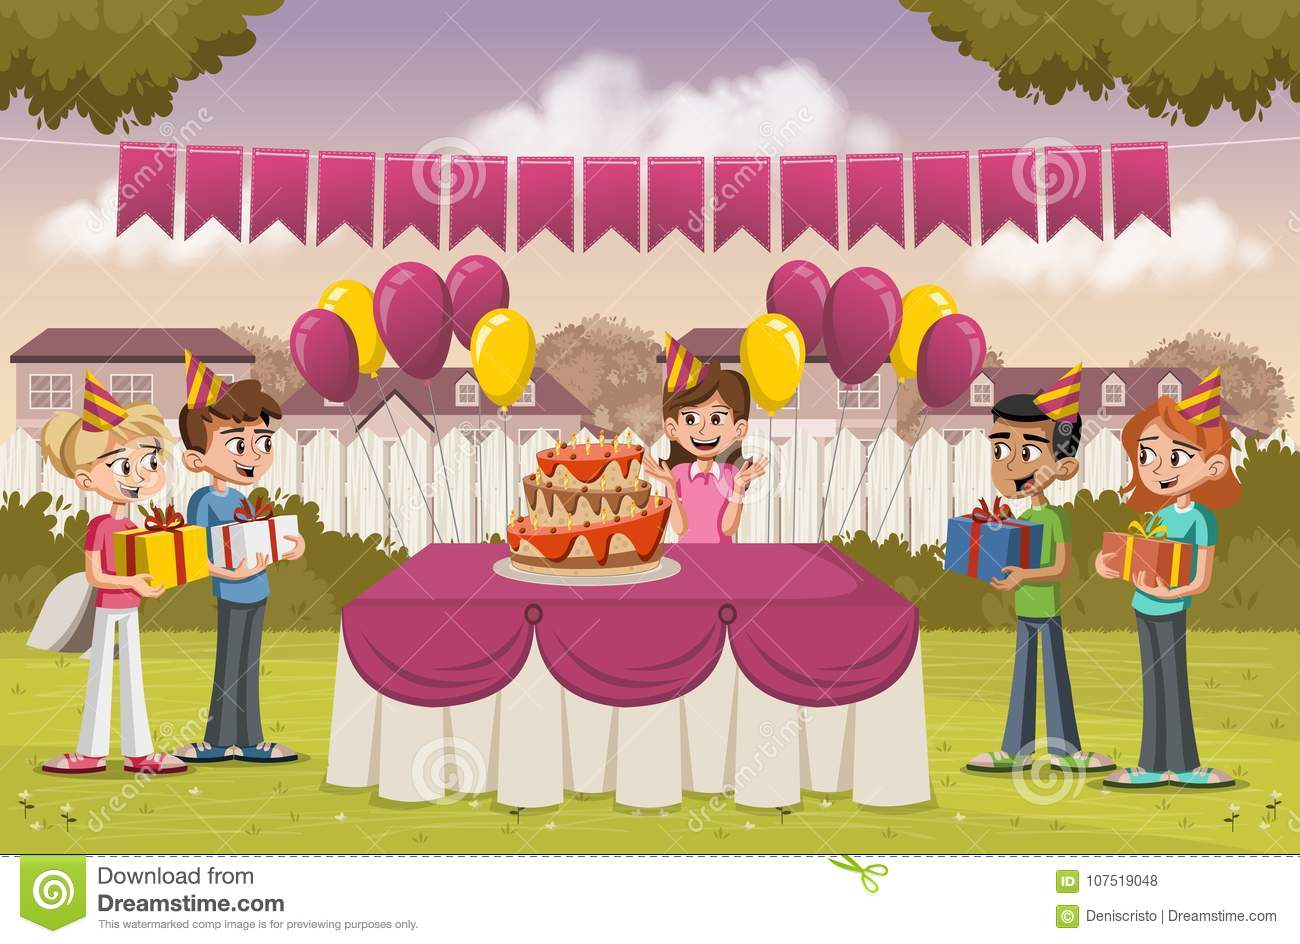 Cartoon Girl With Her Friends At A Birthday Party In The Backyard Of A Colorful House Stock Vector Illustration Of Background Neighborhoodn 107519048